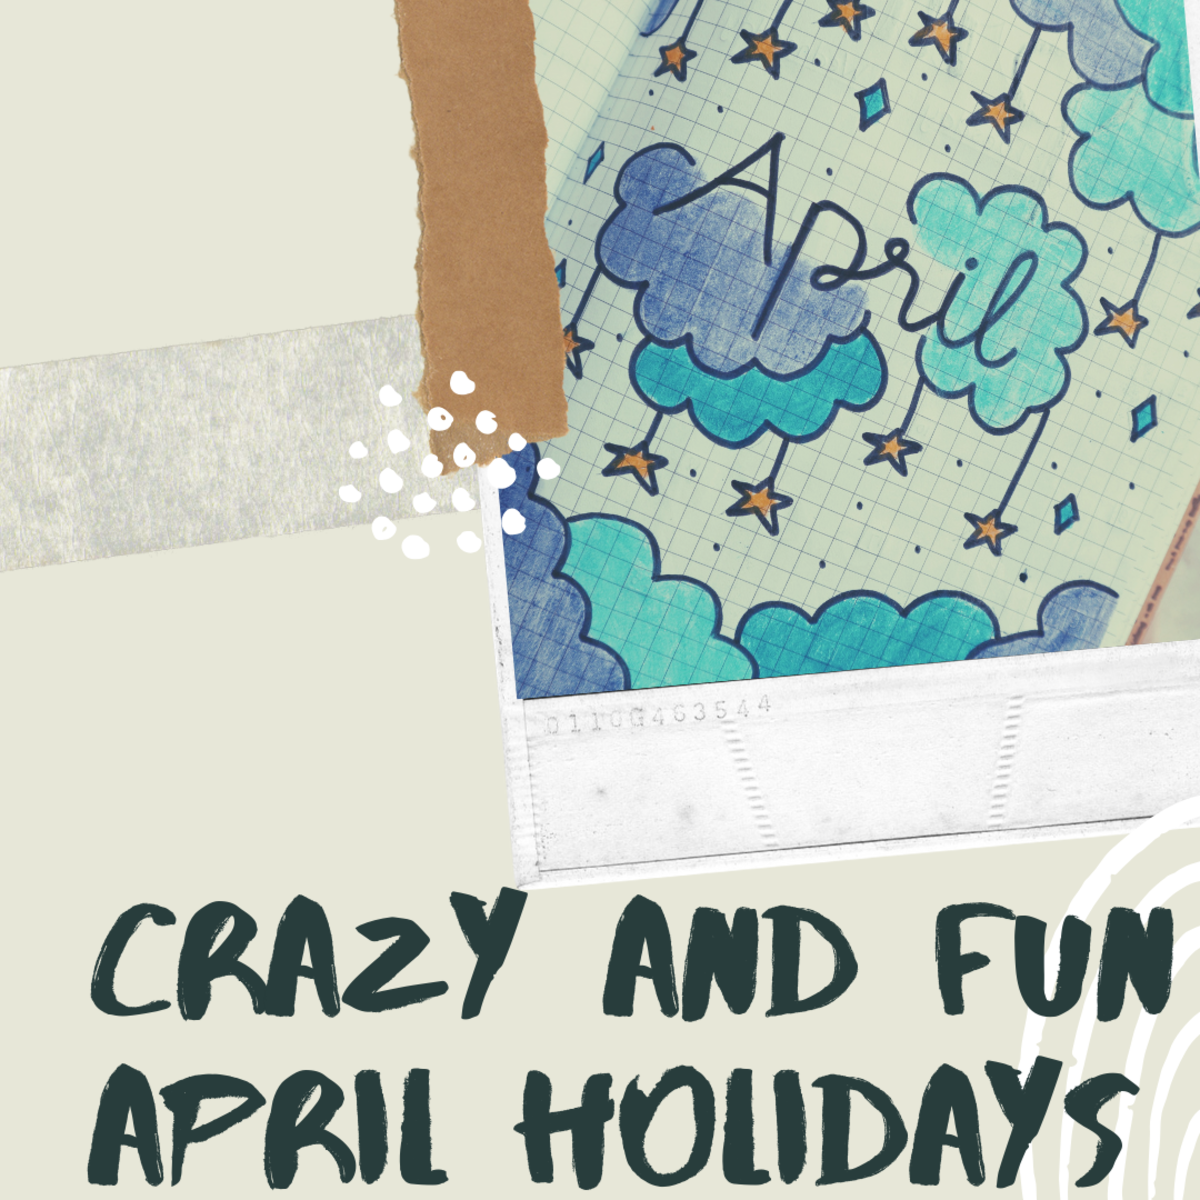 These exciting April holidays are fun for the whole family!